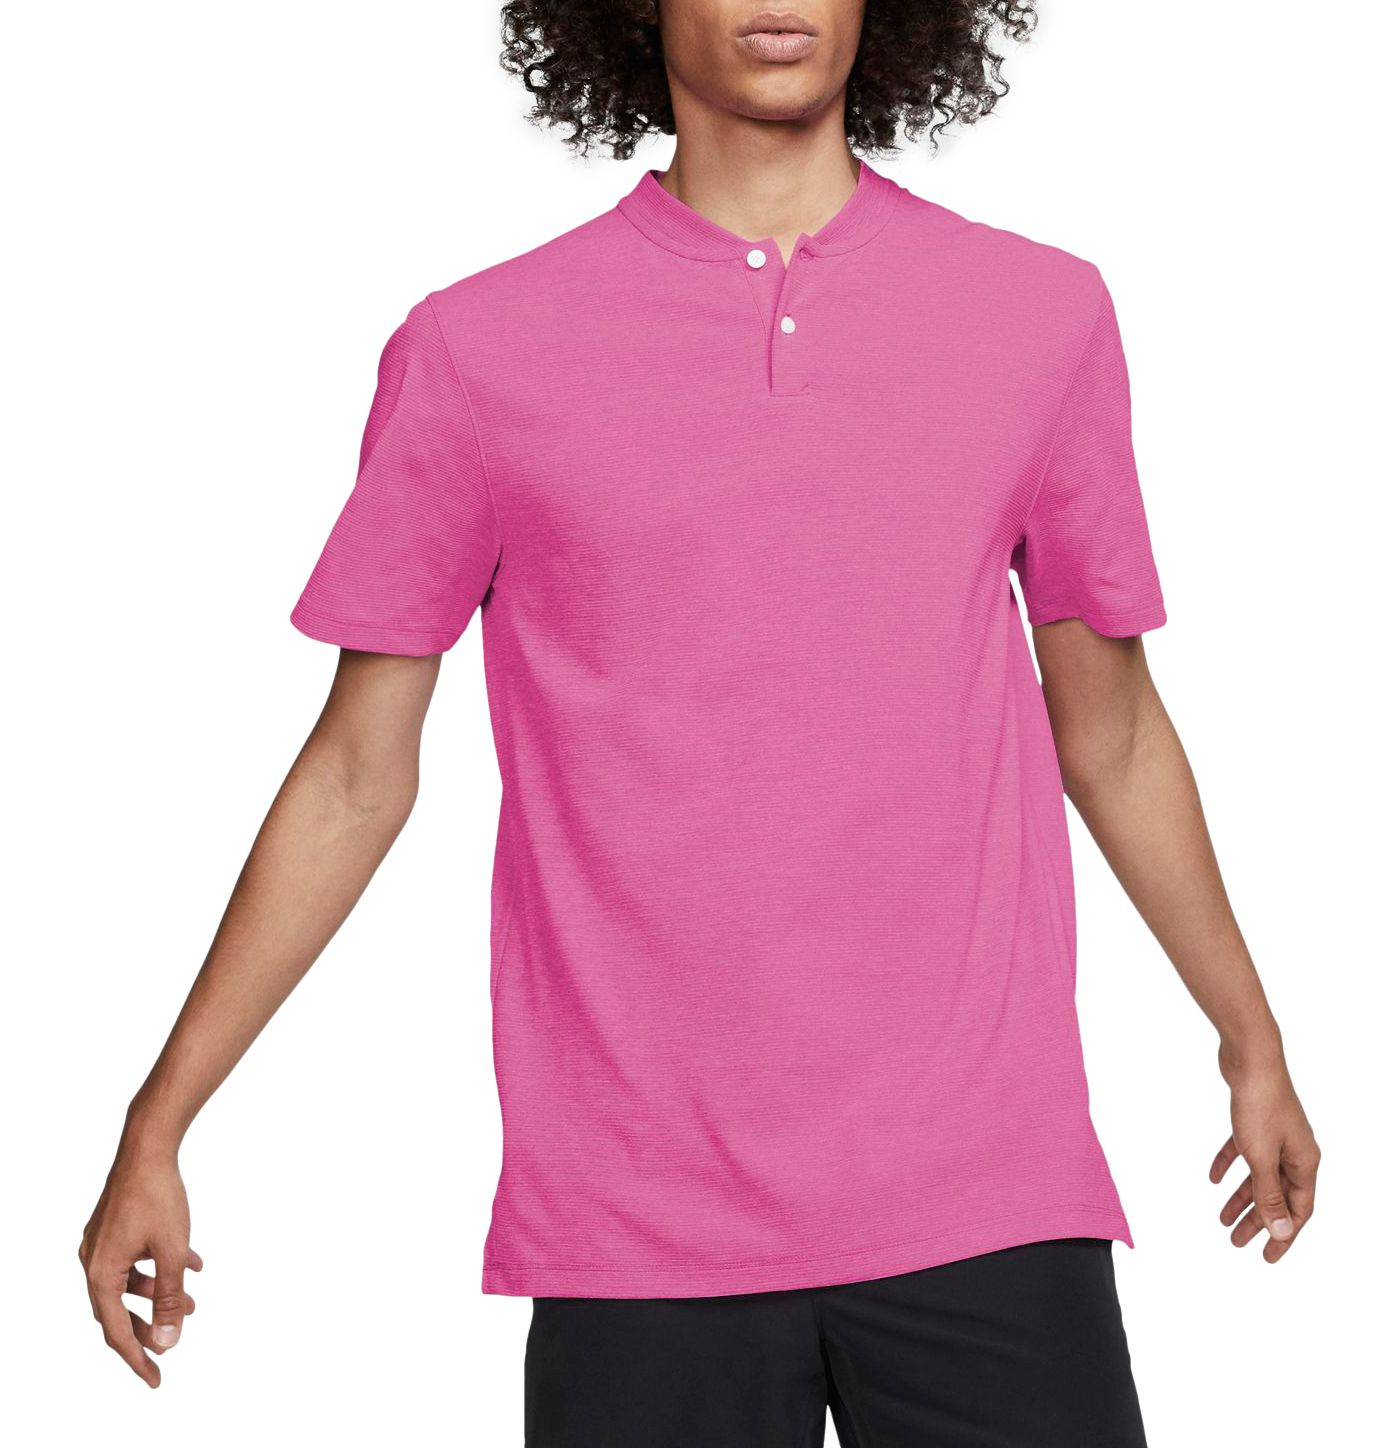 Nike Men's Tiger Woods AeroReact Golf Polo